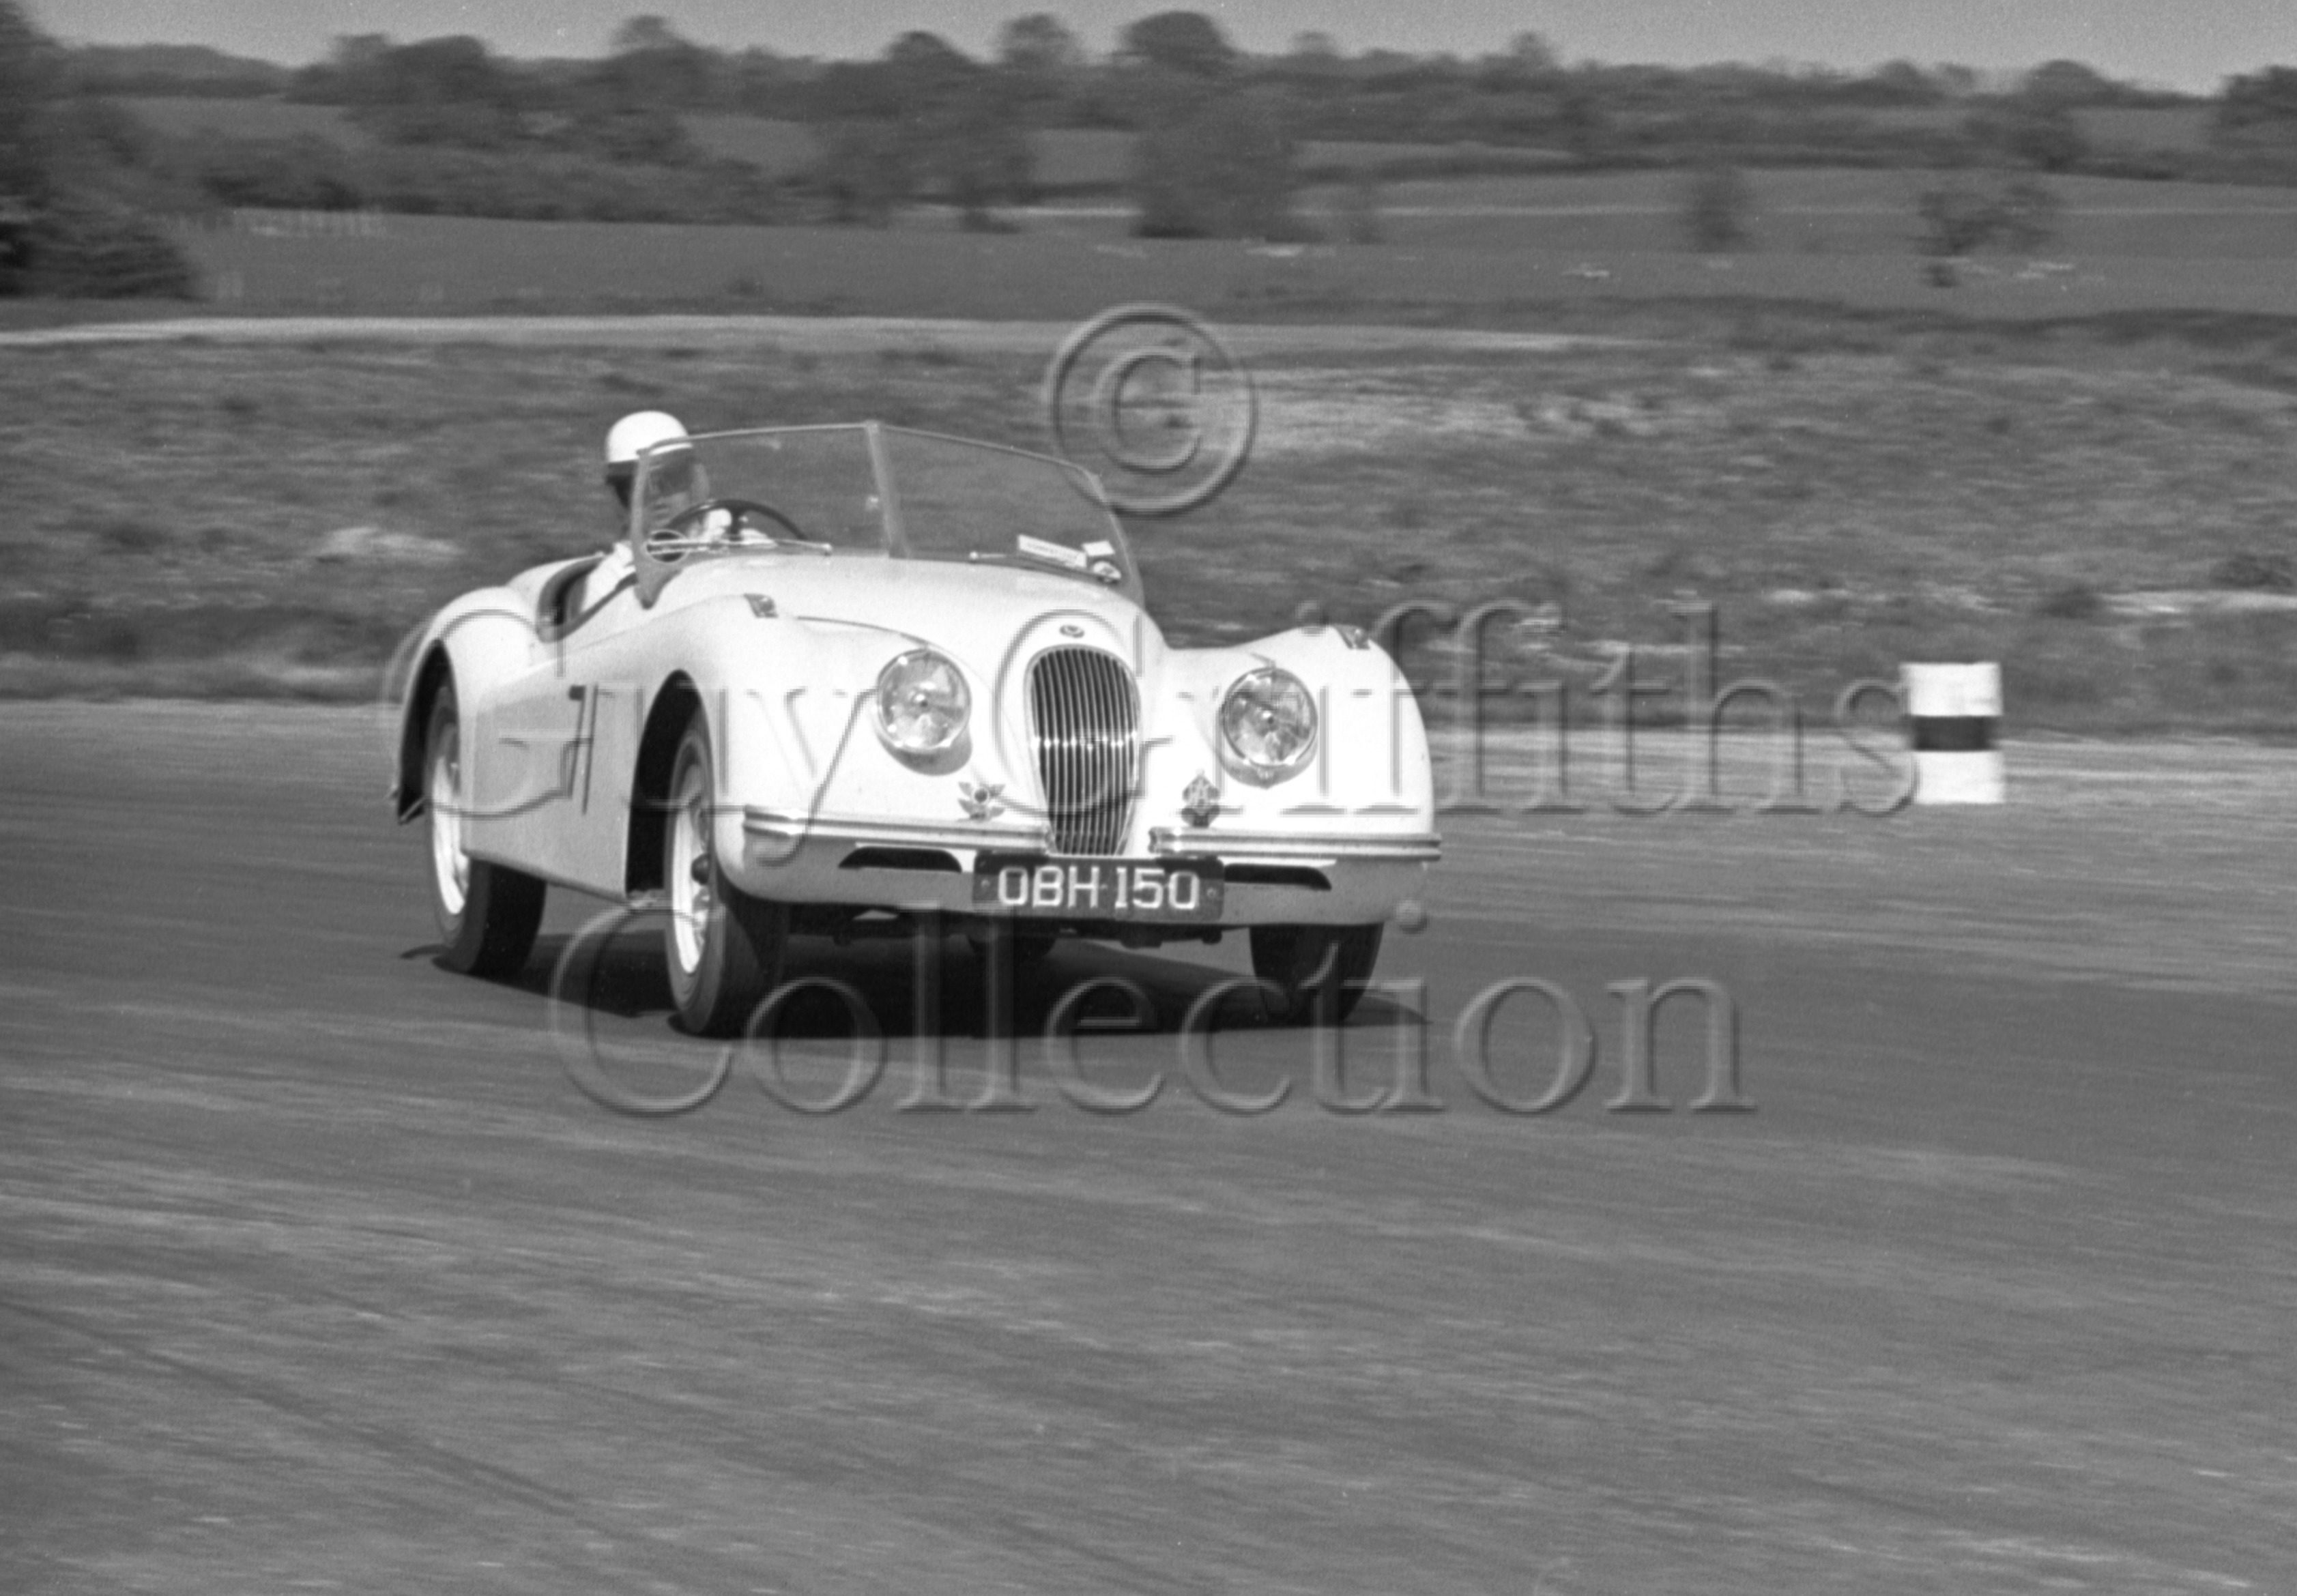 44-994–G-Lee–Jaguar–Silverstone–02-06-1951.jpg - The Guy Griffiths Collection